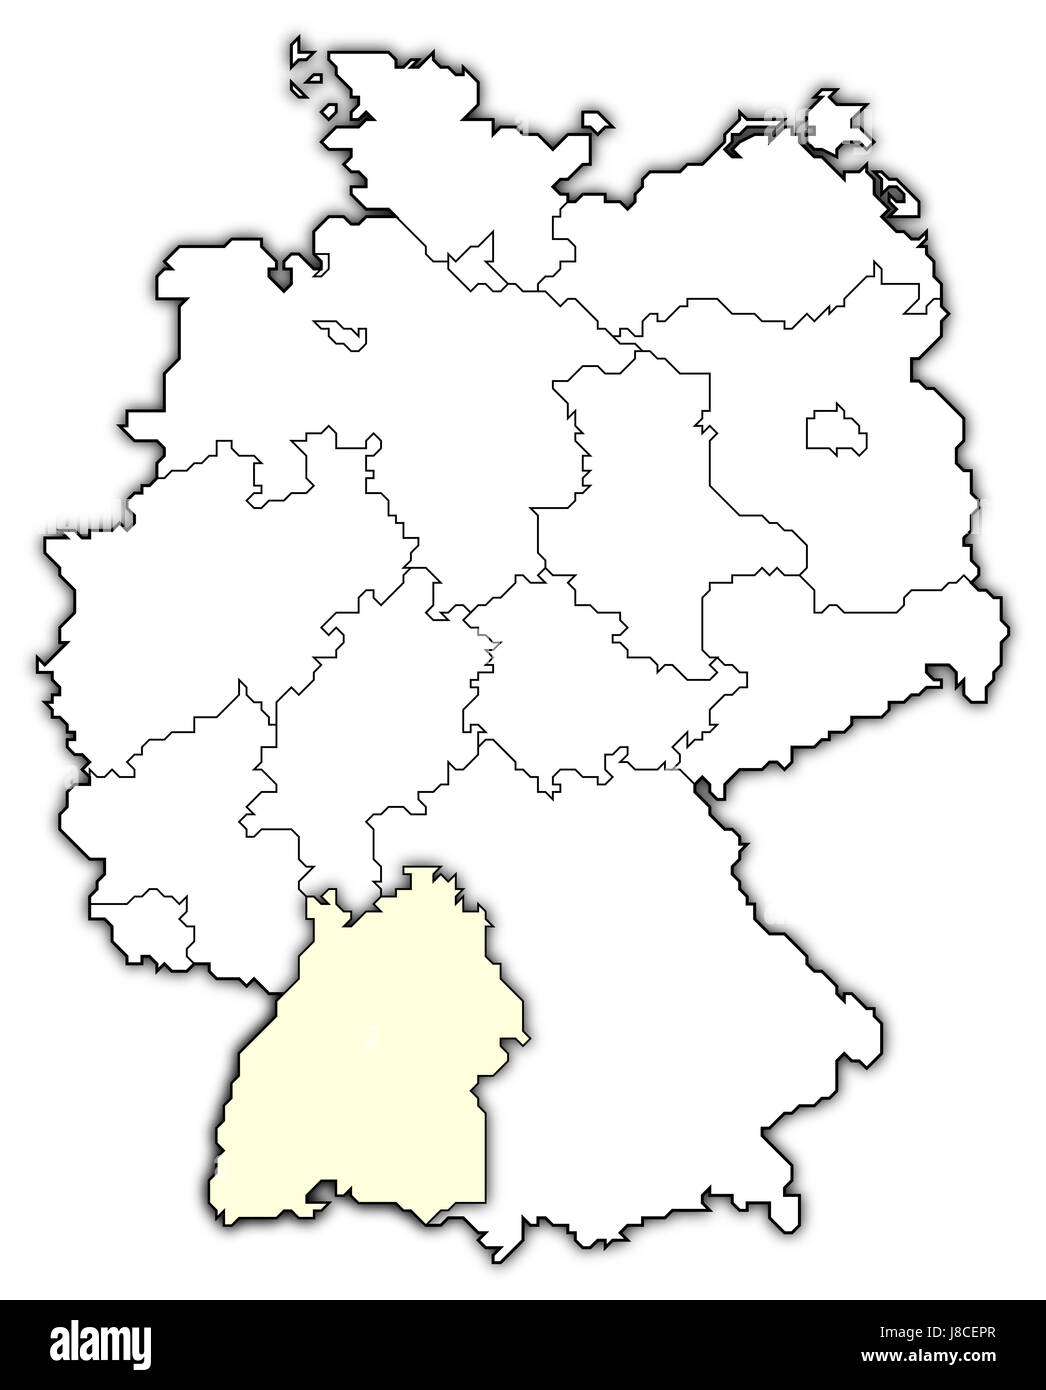 map of germany,baden-wuerttemberg highlighted - Stock Image